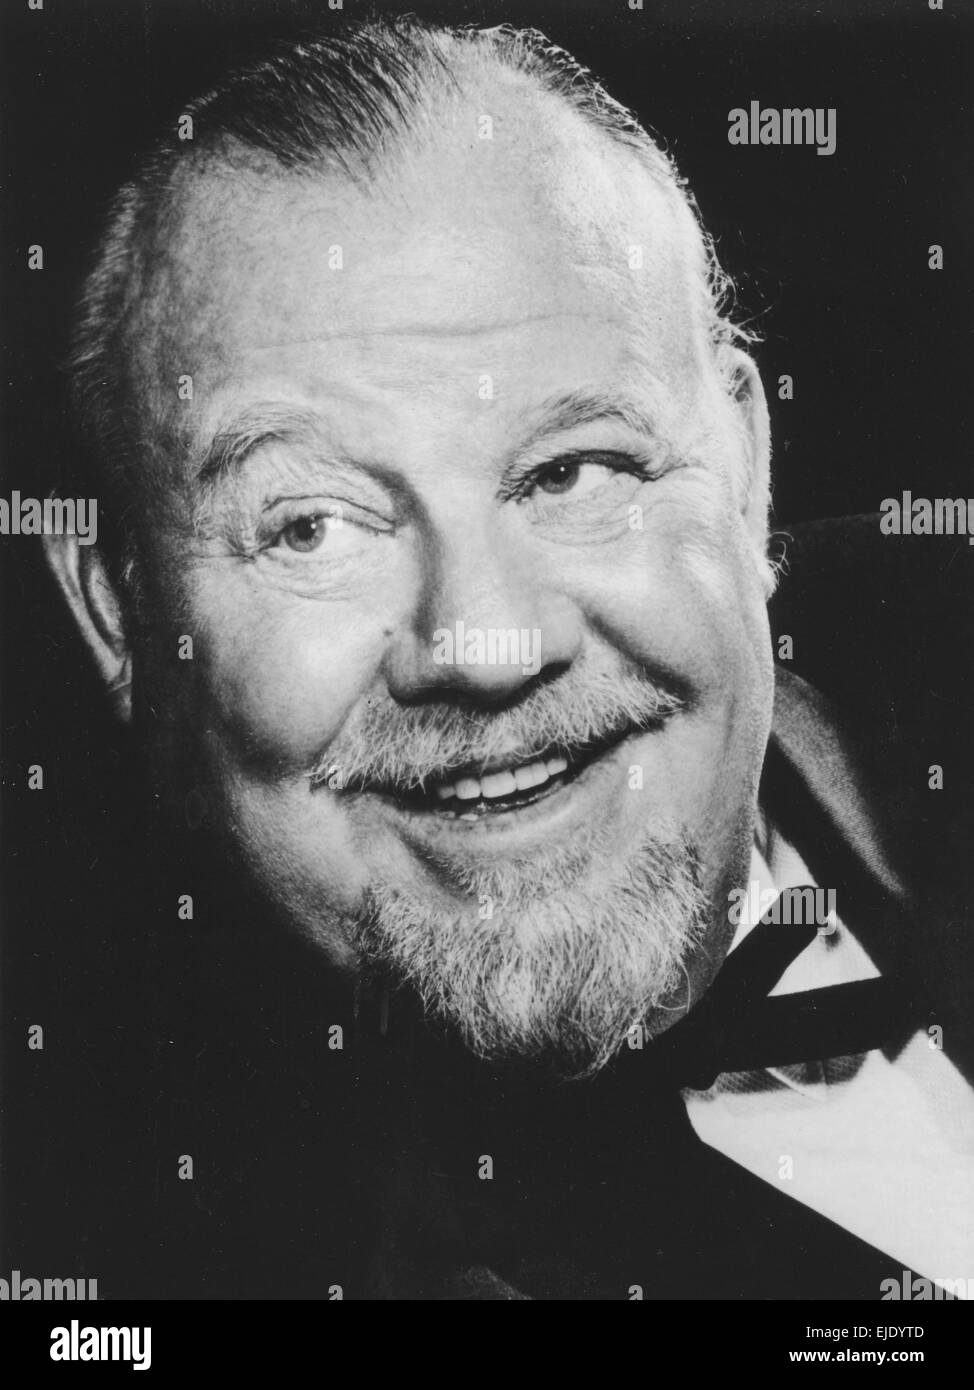 BURL IVES (1909-1995) Promotional photo of US actor and folk singer about 1958 - Stock Image